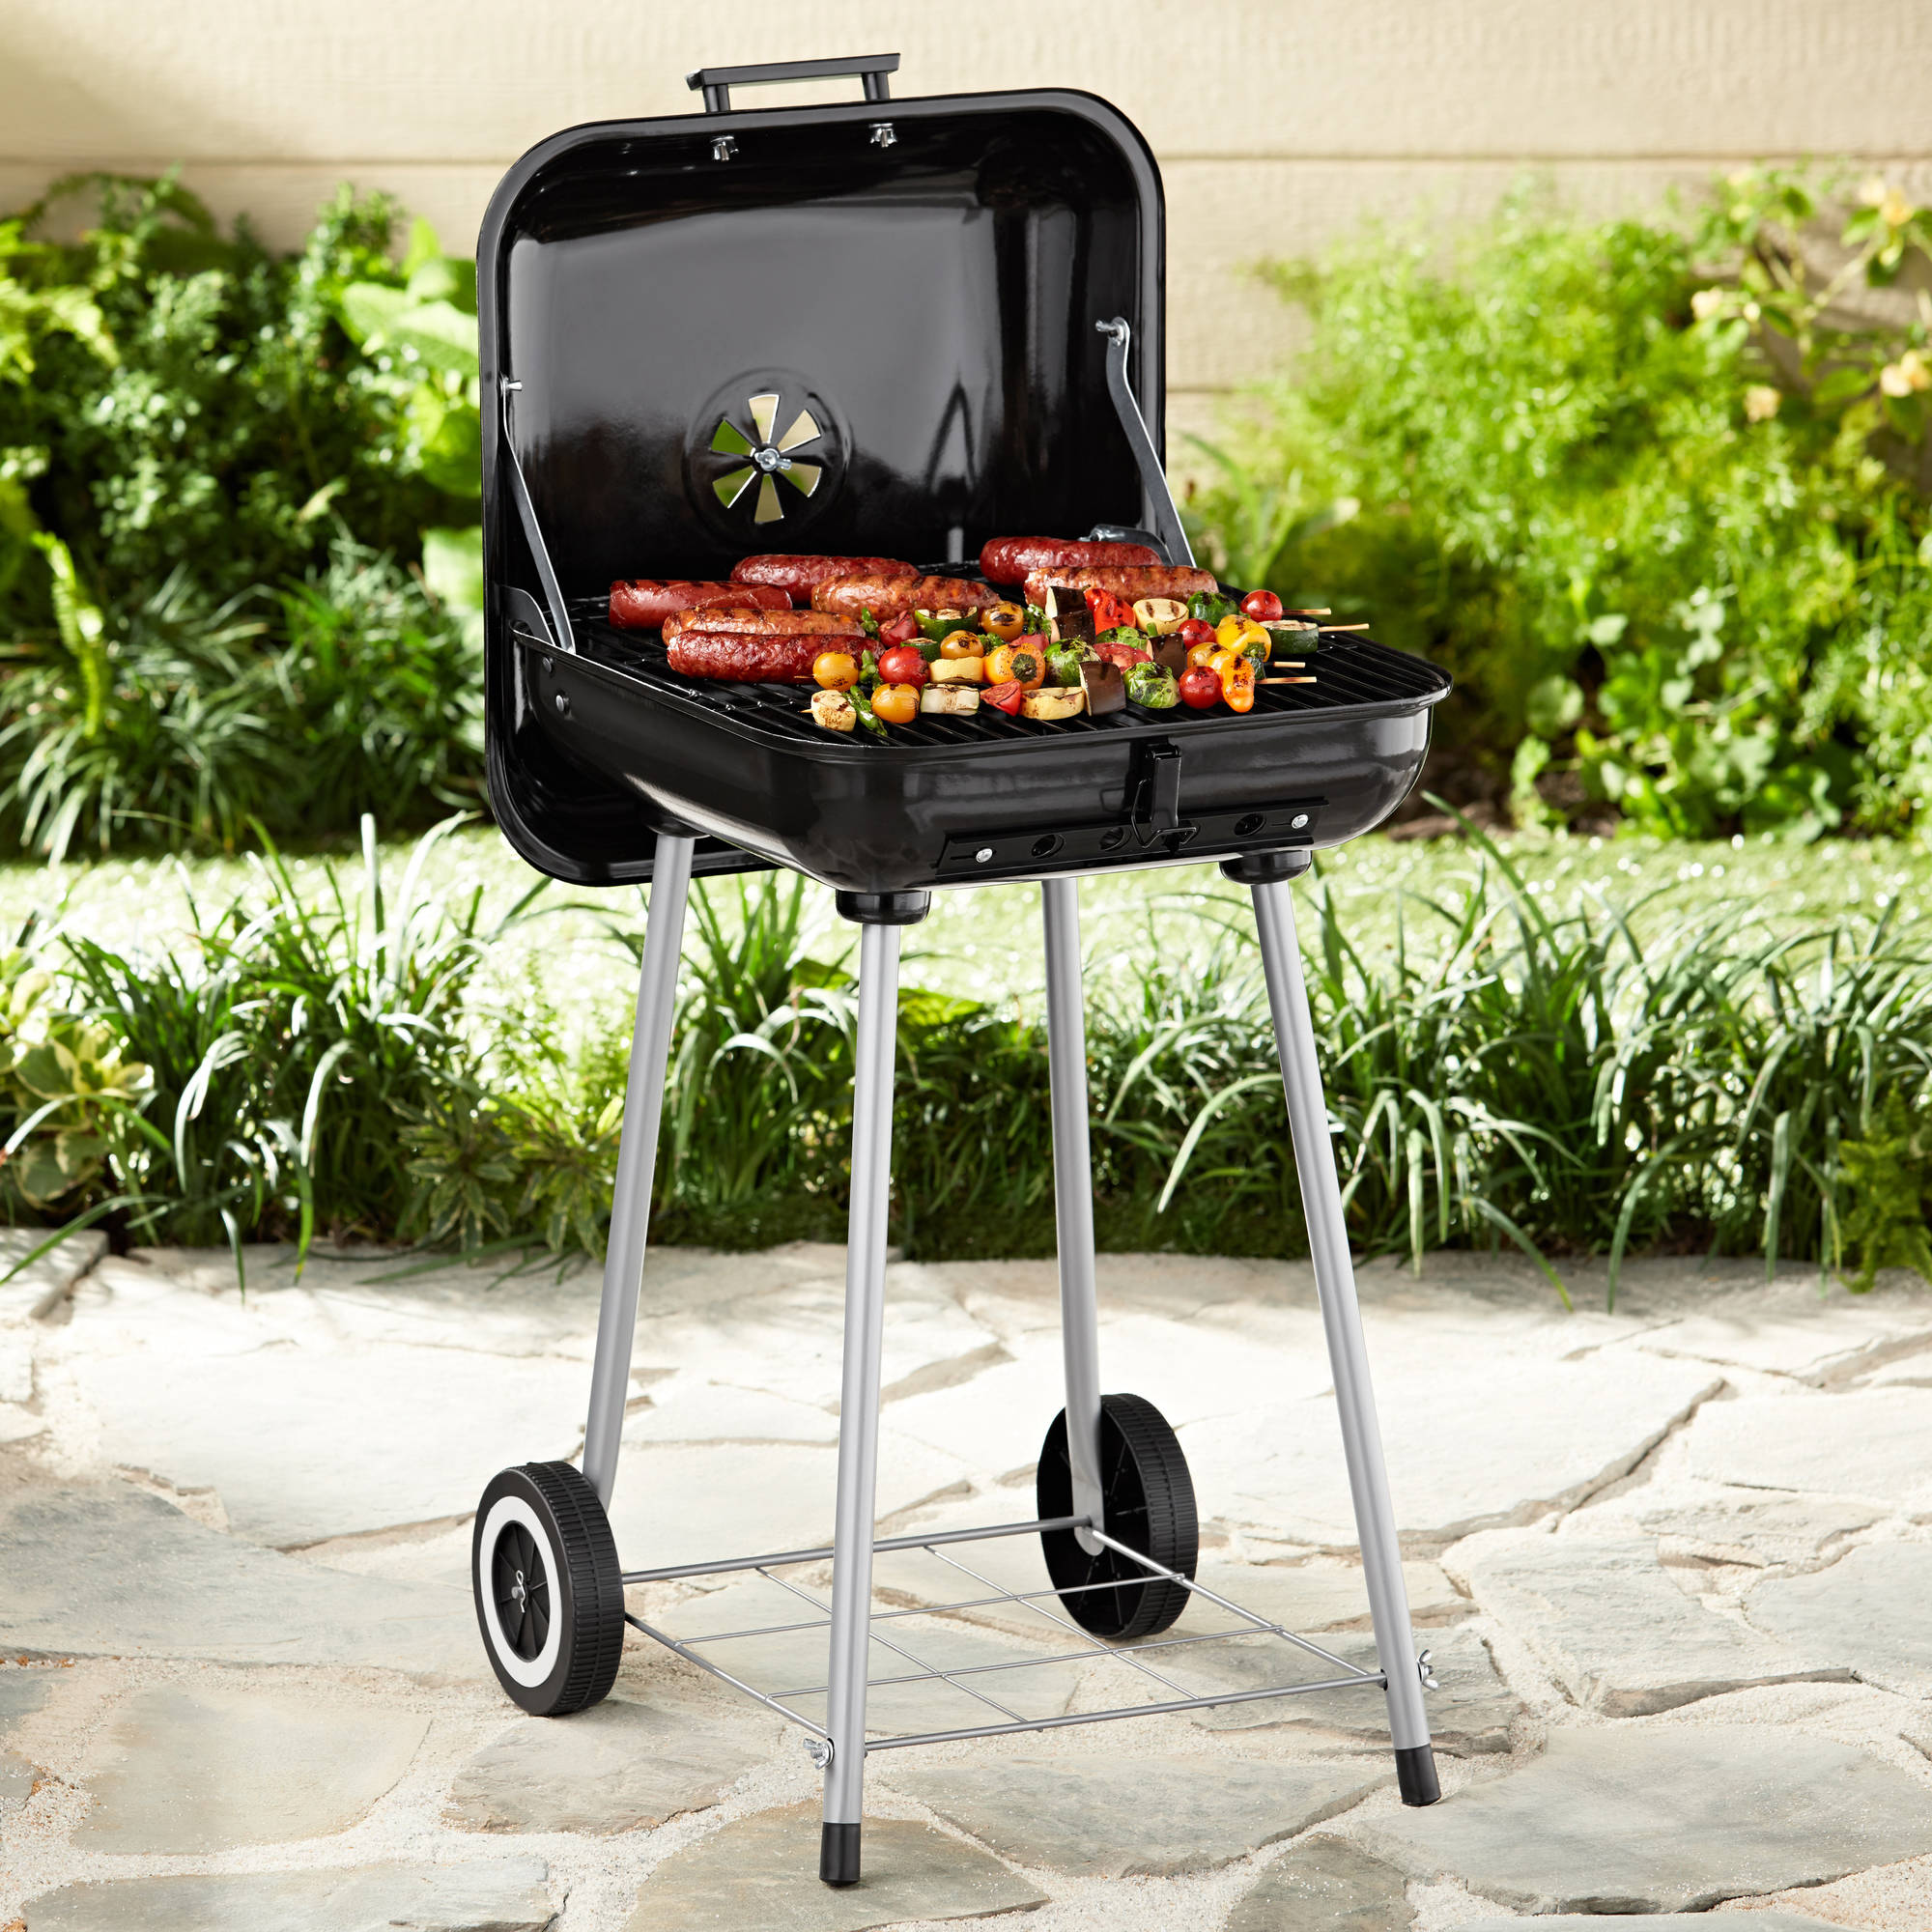 Expert Grill 17.5-Inch Charcoal Grill